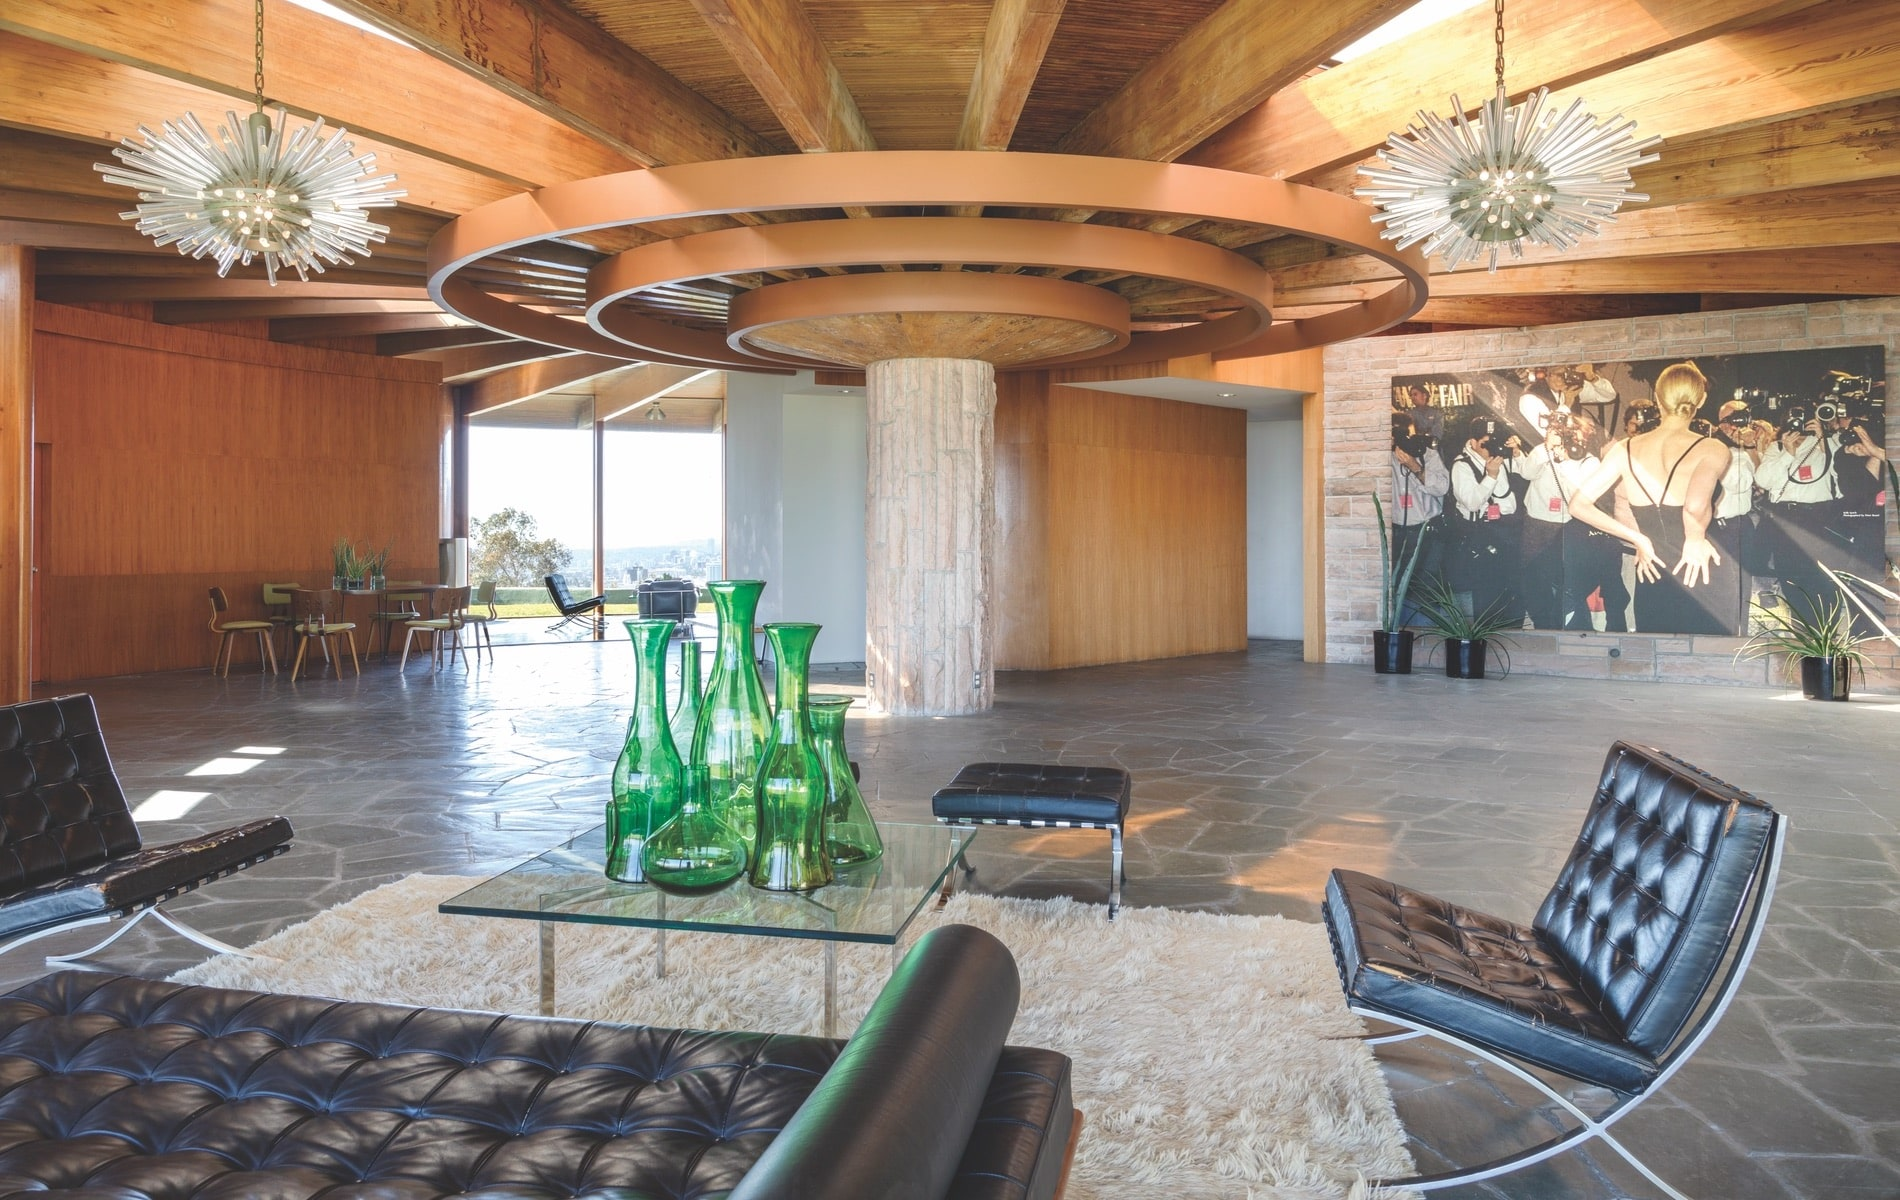 John Lautner, Hollywood Hills, Kelly Lynch, Mitch Glazer, Sara Essex Bradley